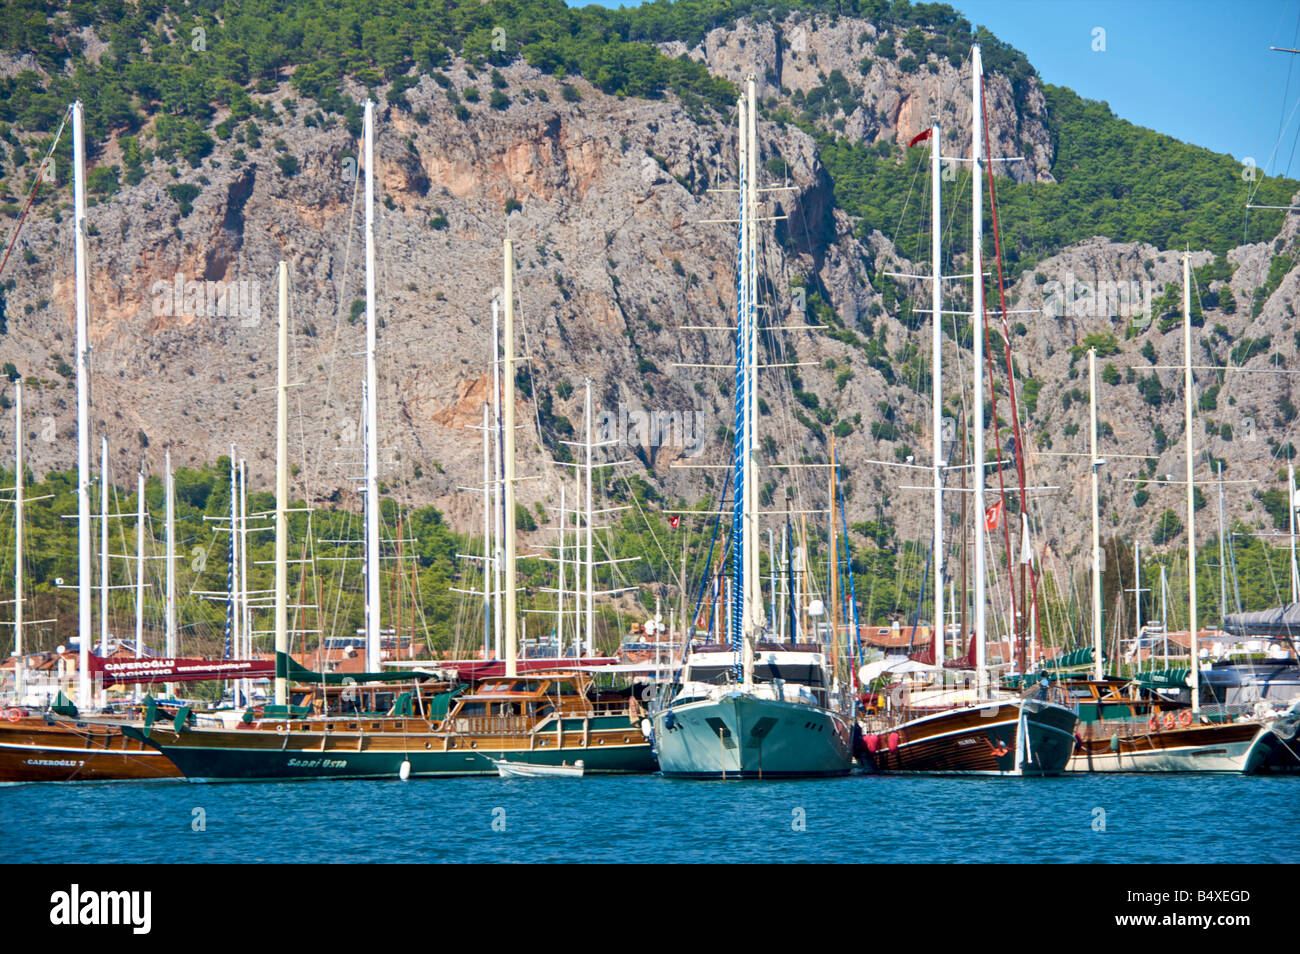 Assorted boats and yachts anchored in Goçek Bay Turkey - Stock Image